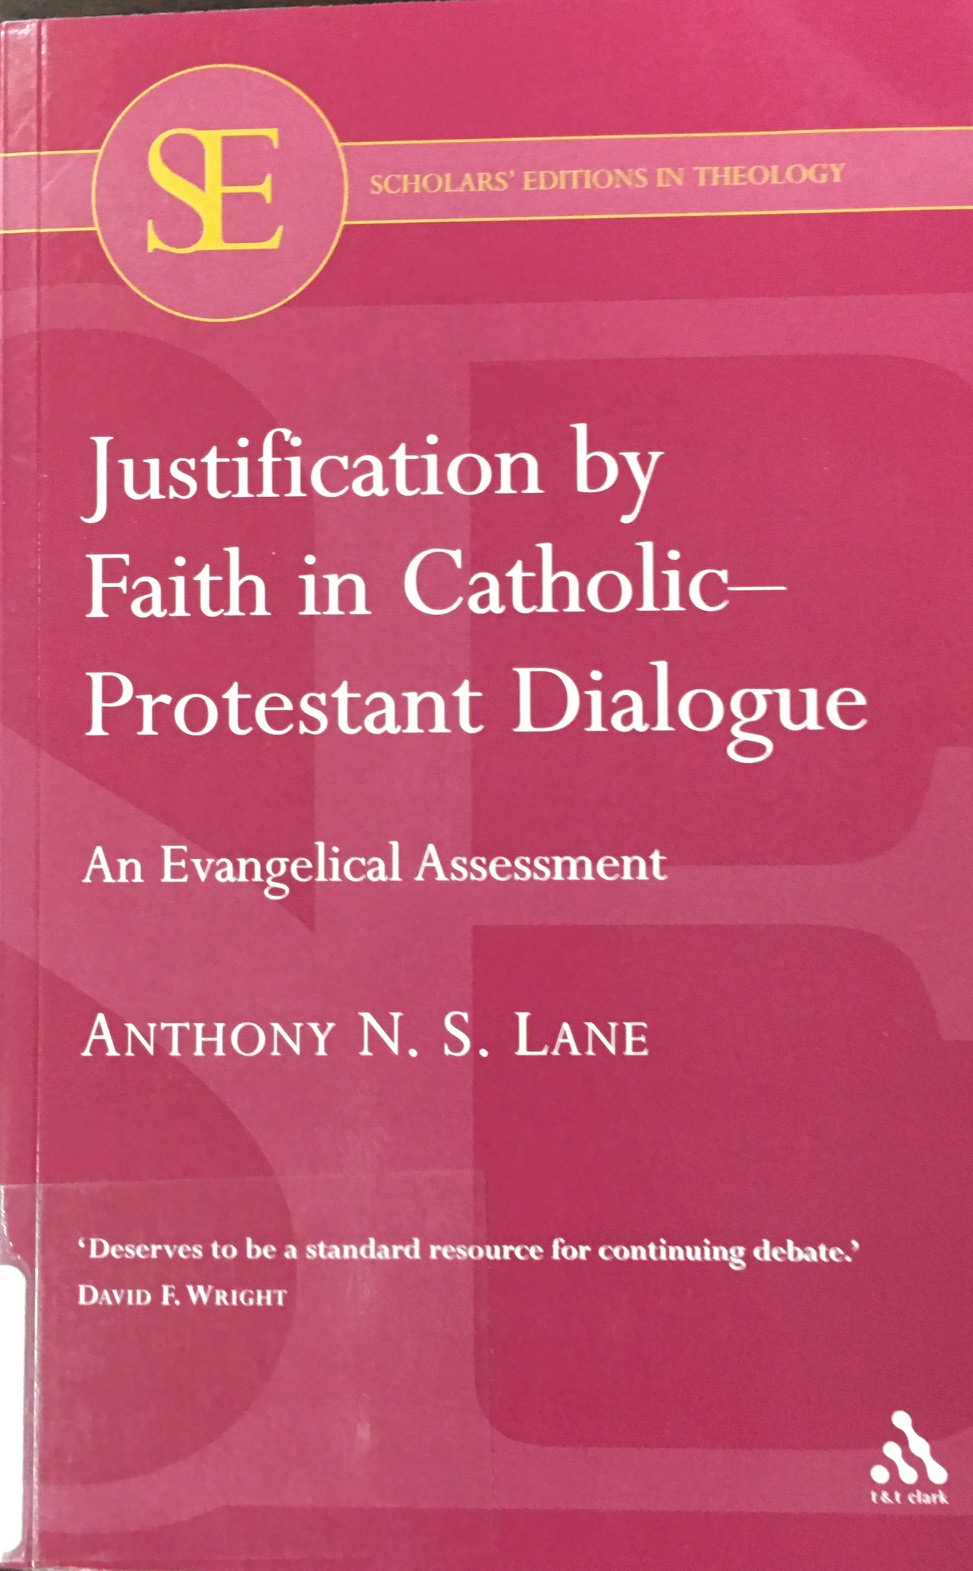 Image for Justification by Faith in Catholic-Protestant Dialogue: An Evangelical Assessment (Scholars' Editions in Theology)